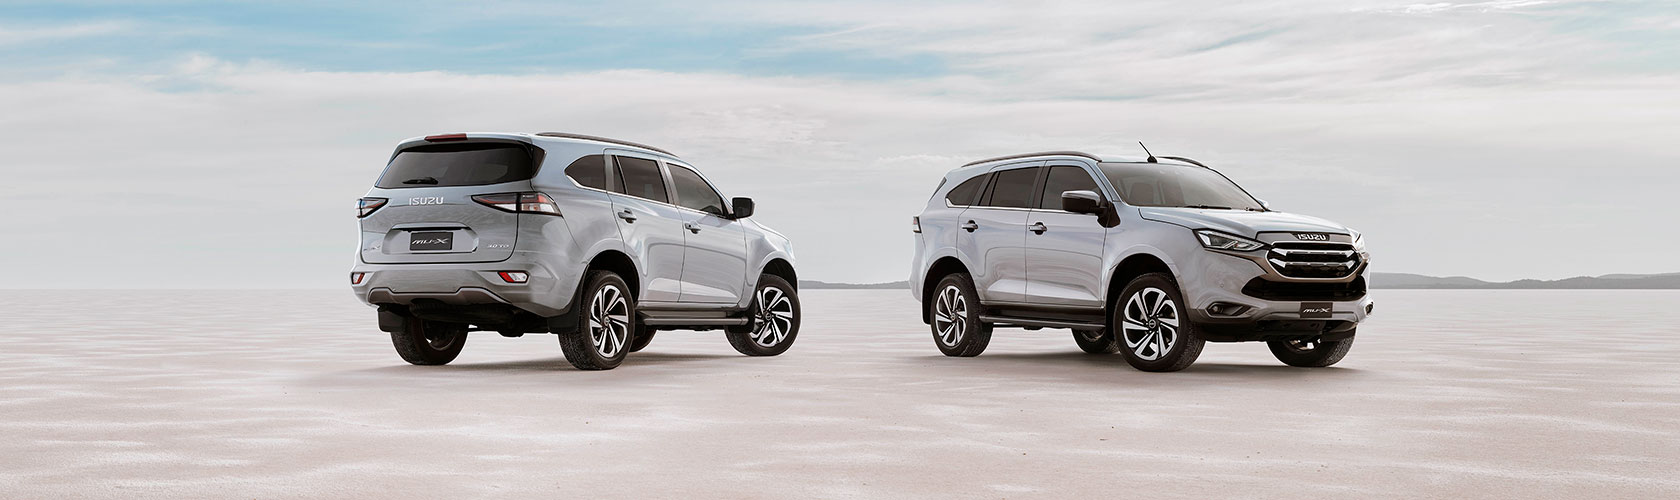 EXTERIOR STYLING Image